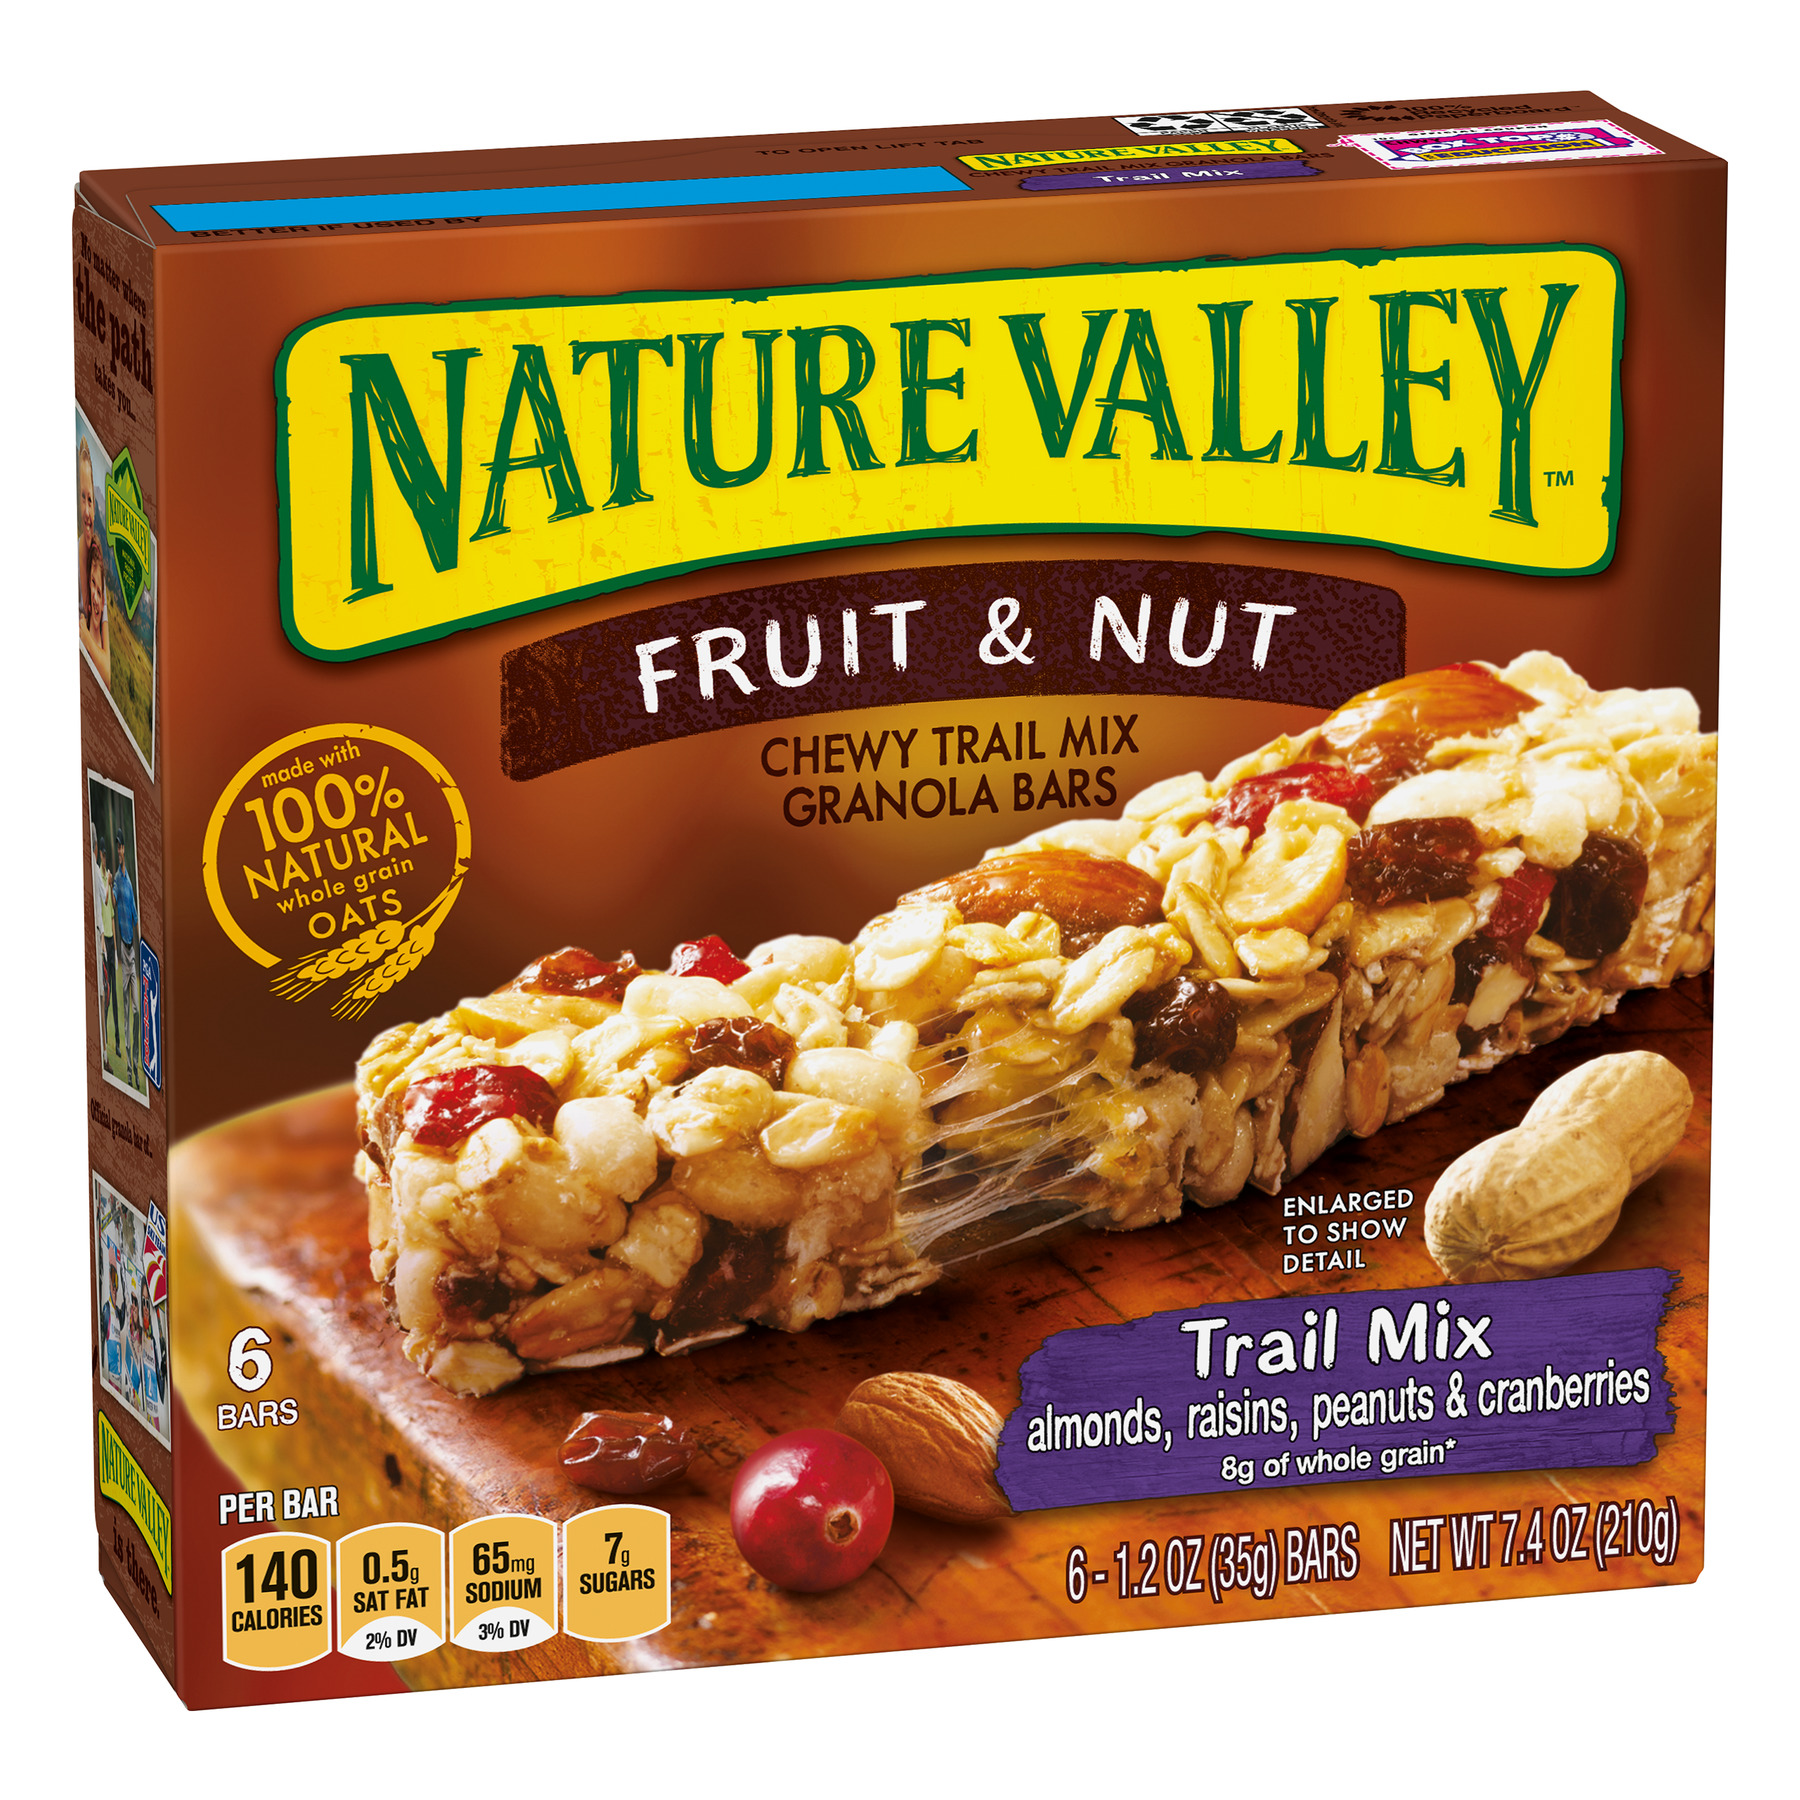 Nature Valley Chewy Granola Bar Trail Mix Fruit & Nut 6 Bars - 1.2 oz